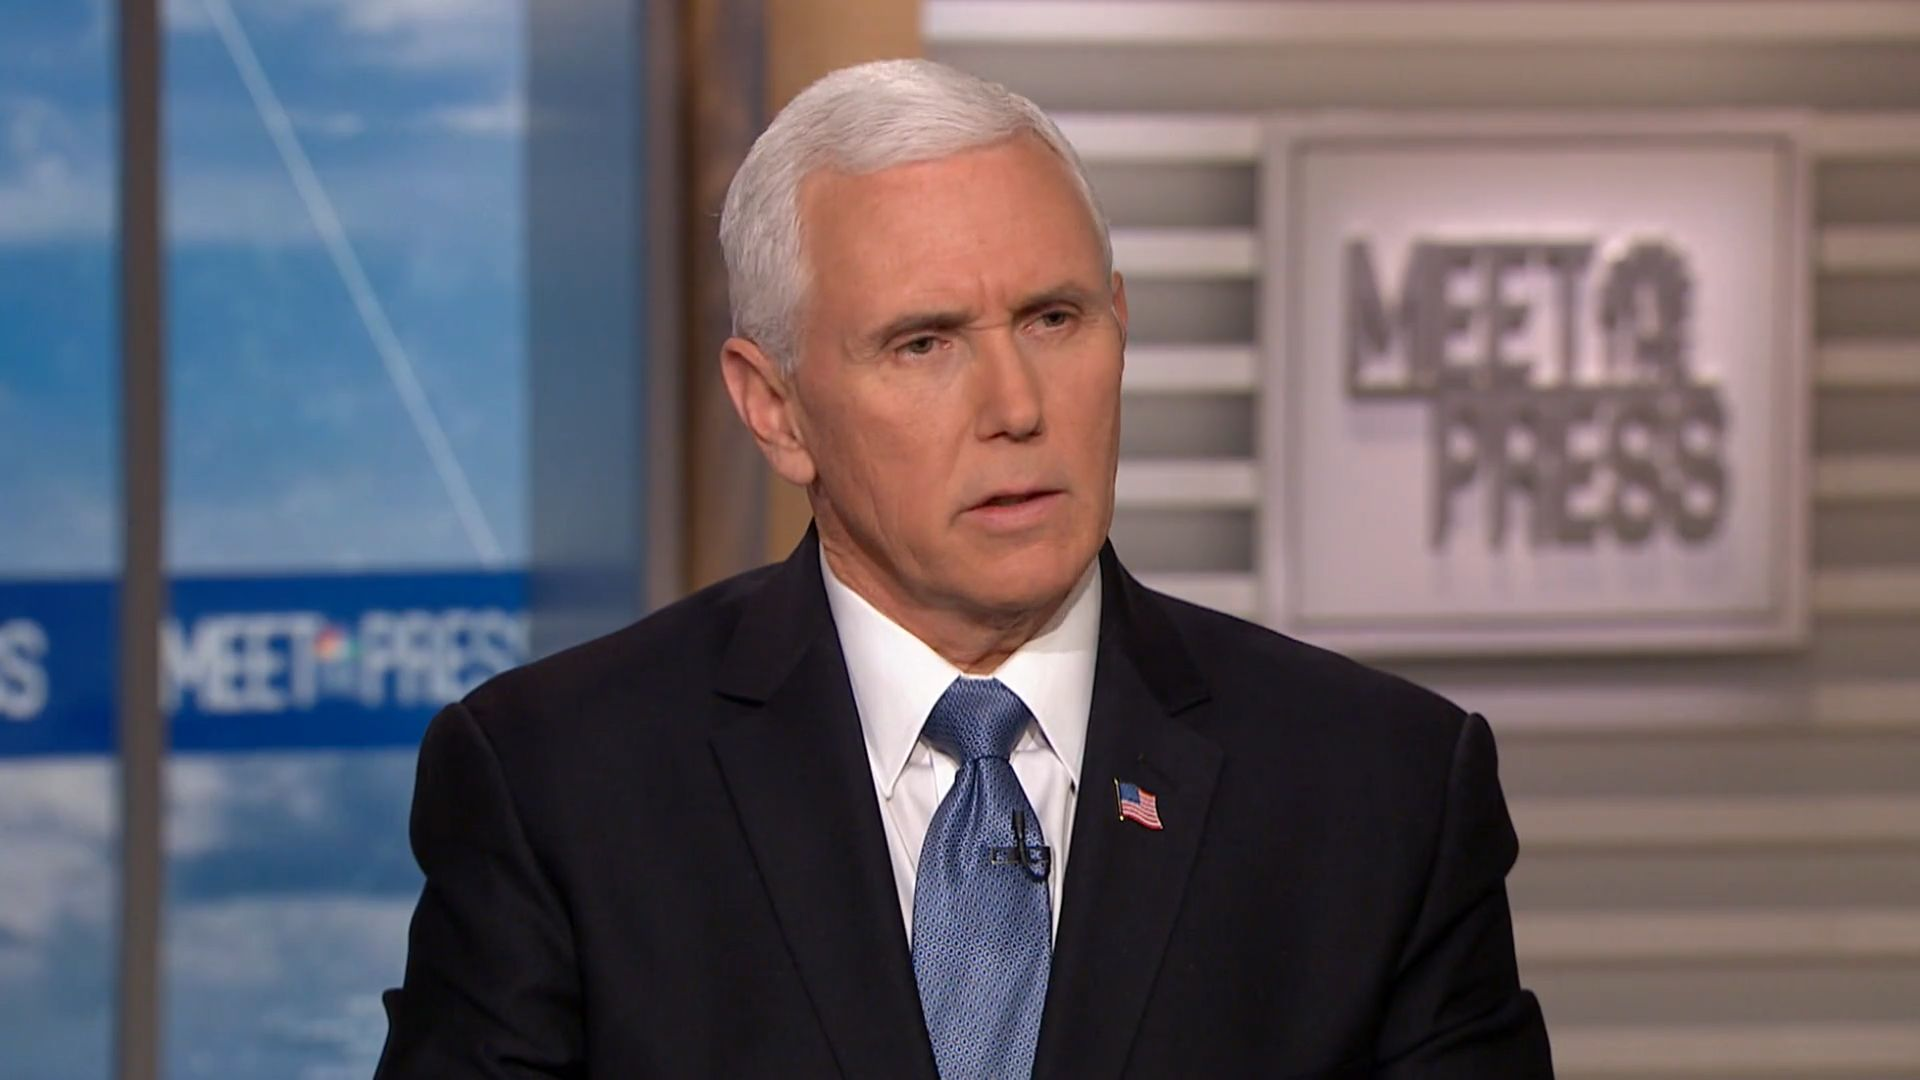 Vice President Mike Pence said Sunday that additional cases ofCOVID-19 in the U.S. are expected though the risk of deat